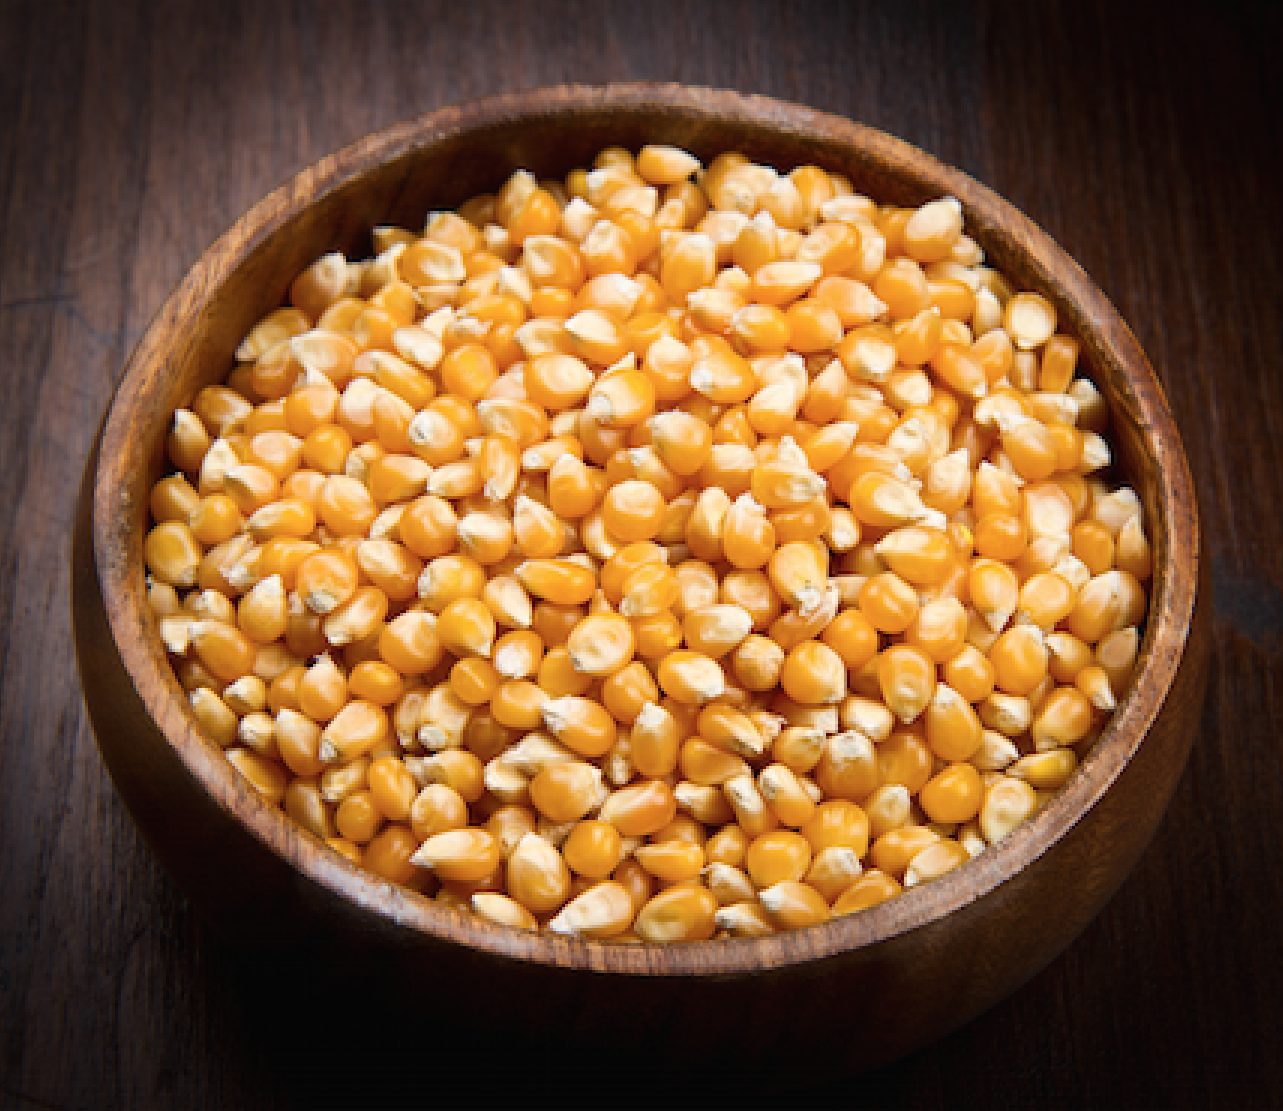 Whole Grain Maize In Dog Food